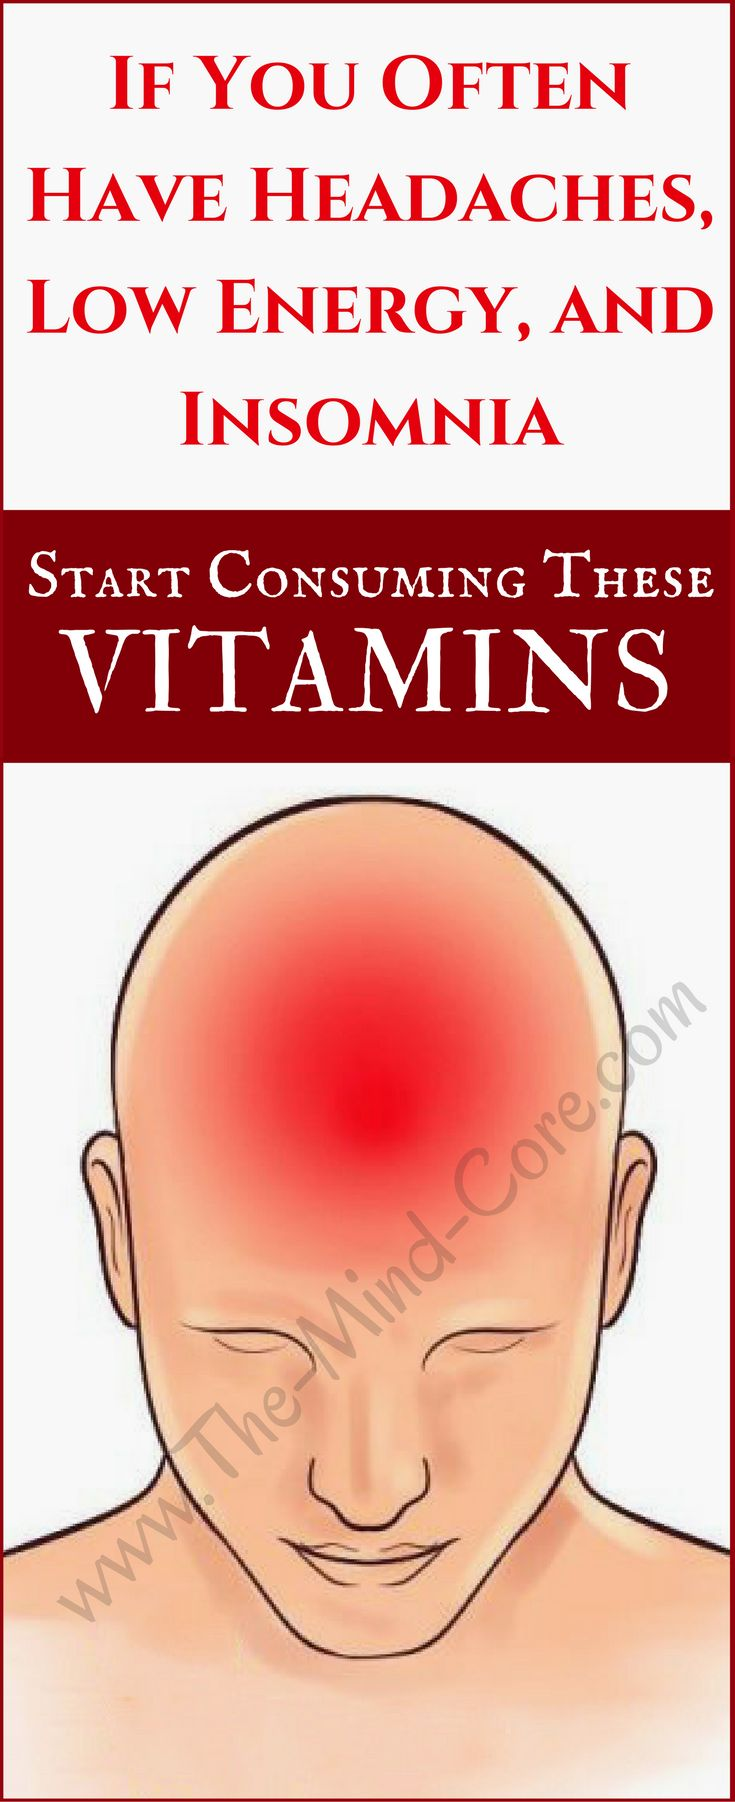 ATTENTION: Do You Often Have Headaches, Low Energy and Insomnia?! You MUST Consume These Vitamins